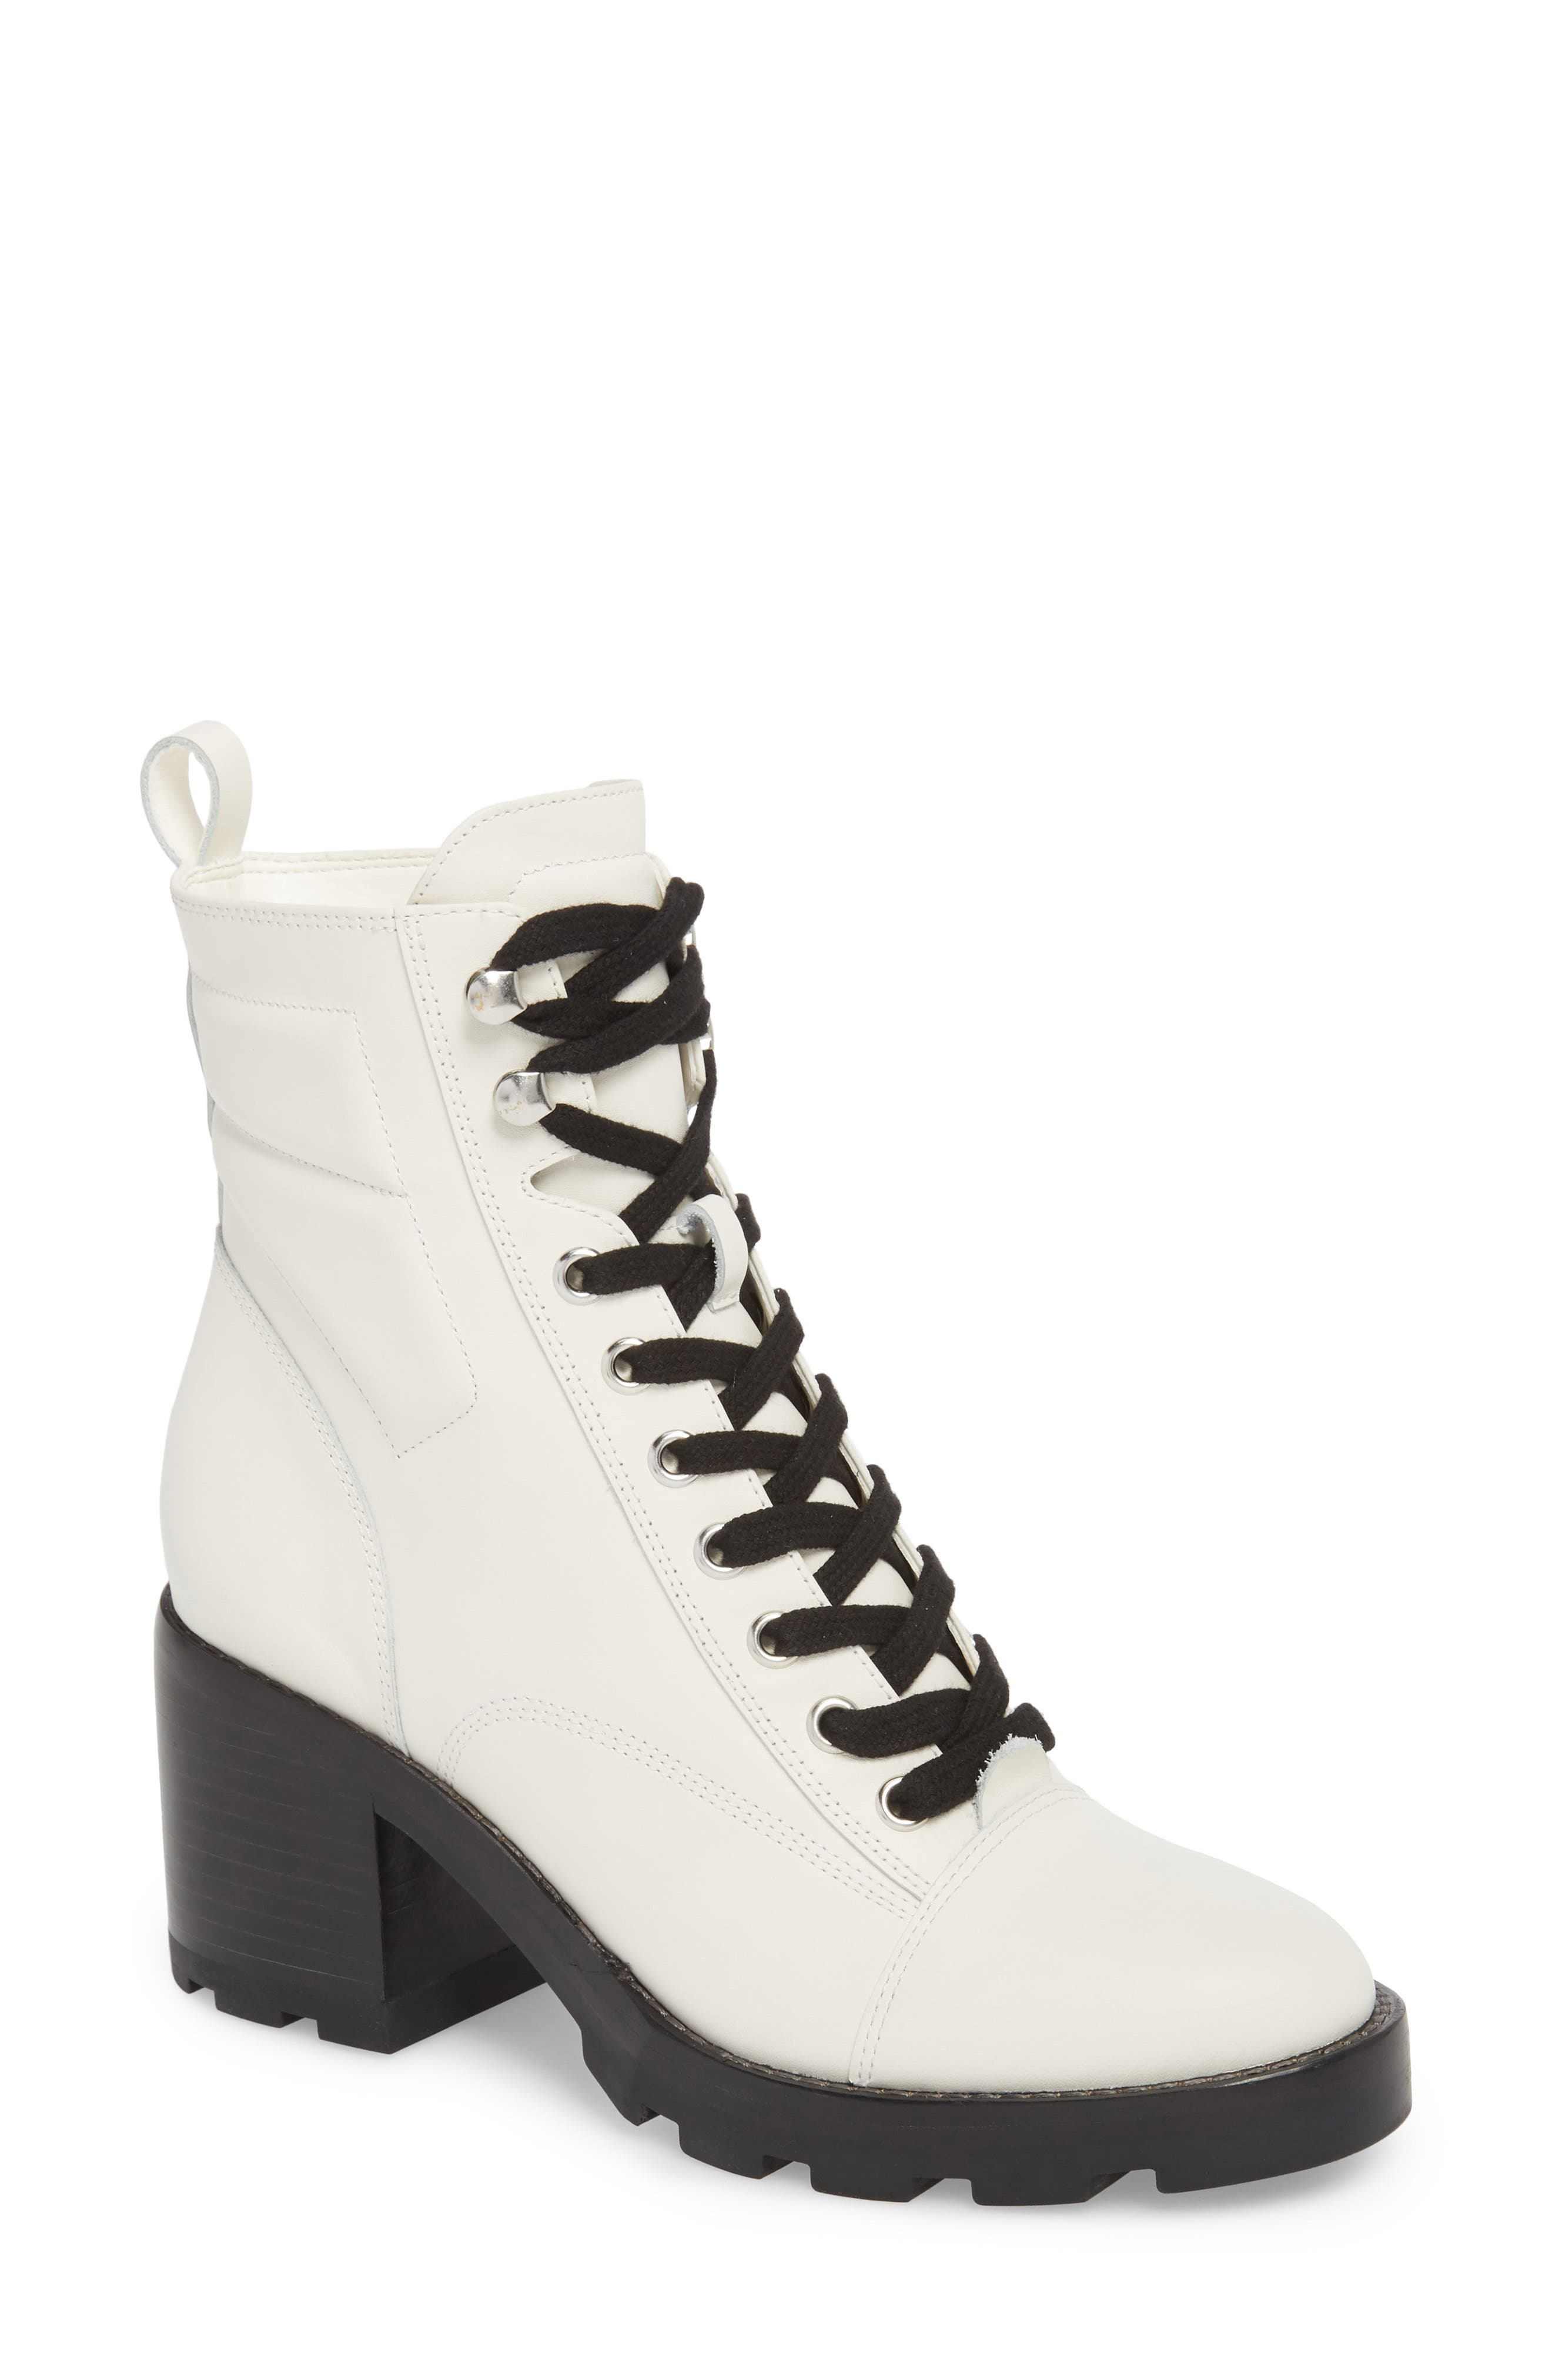 Warid Moto Bootie,                         Main,                         color, IVORY LEATHER